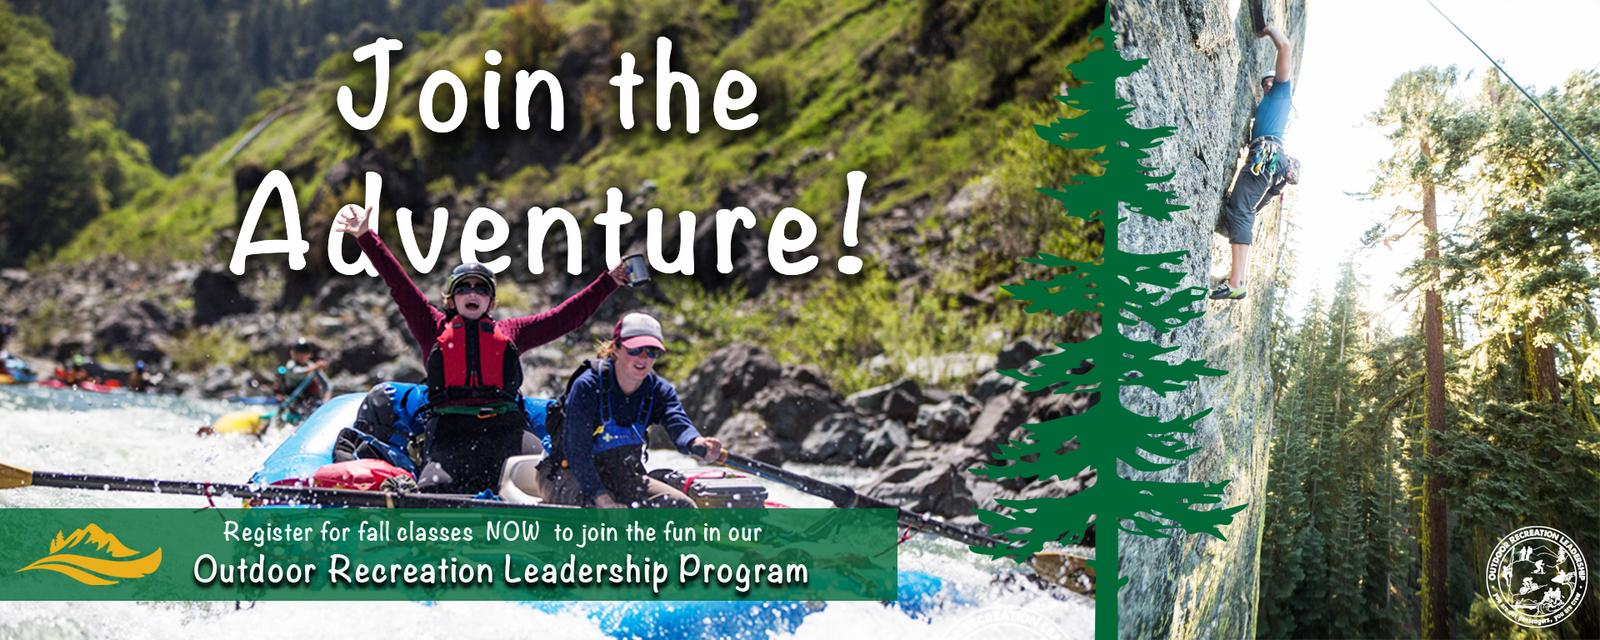 Join the Adventure, Register for fall the Outdoor Recreation Leadership program